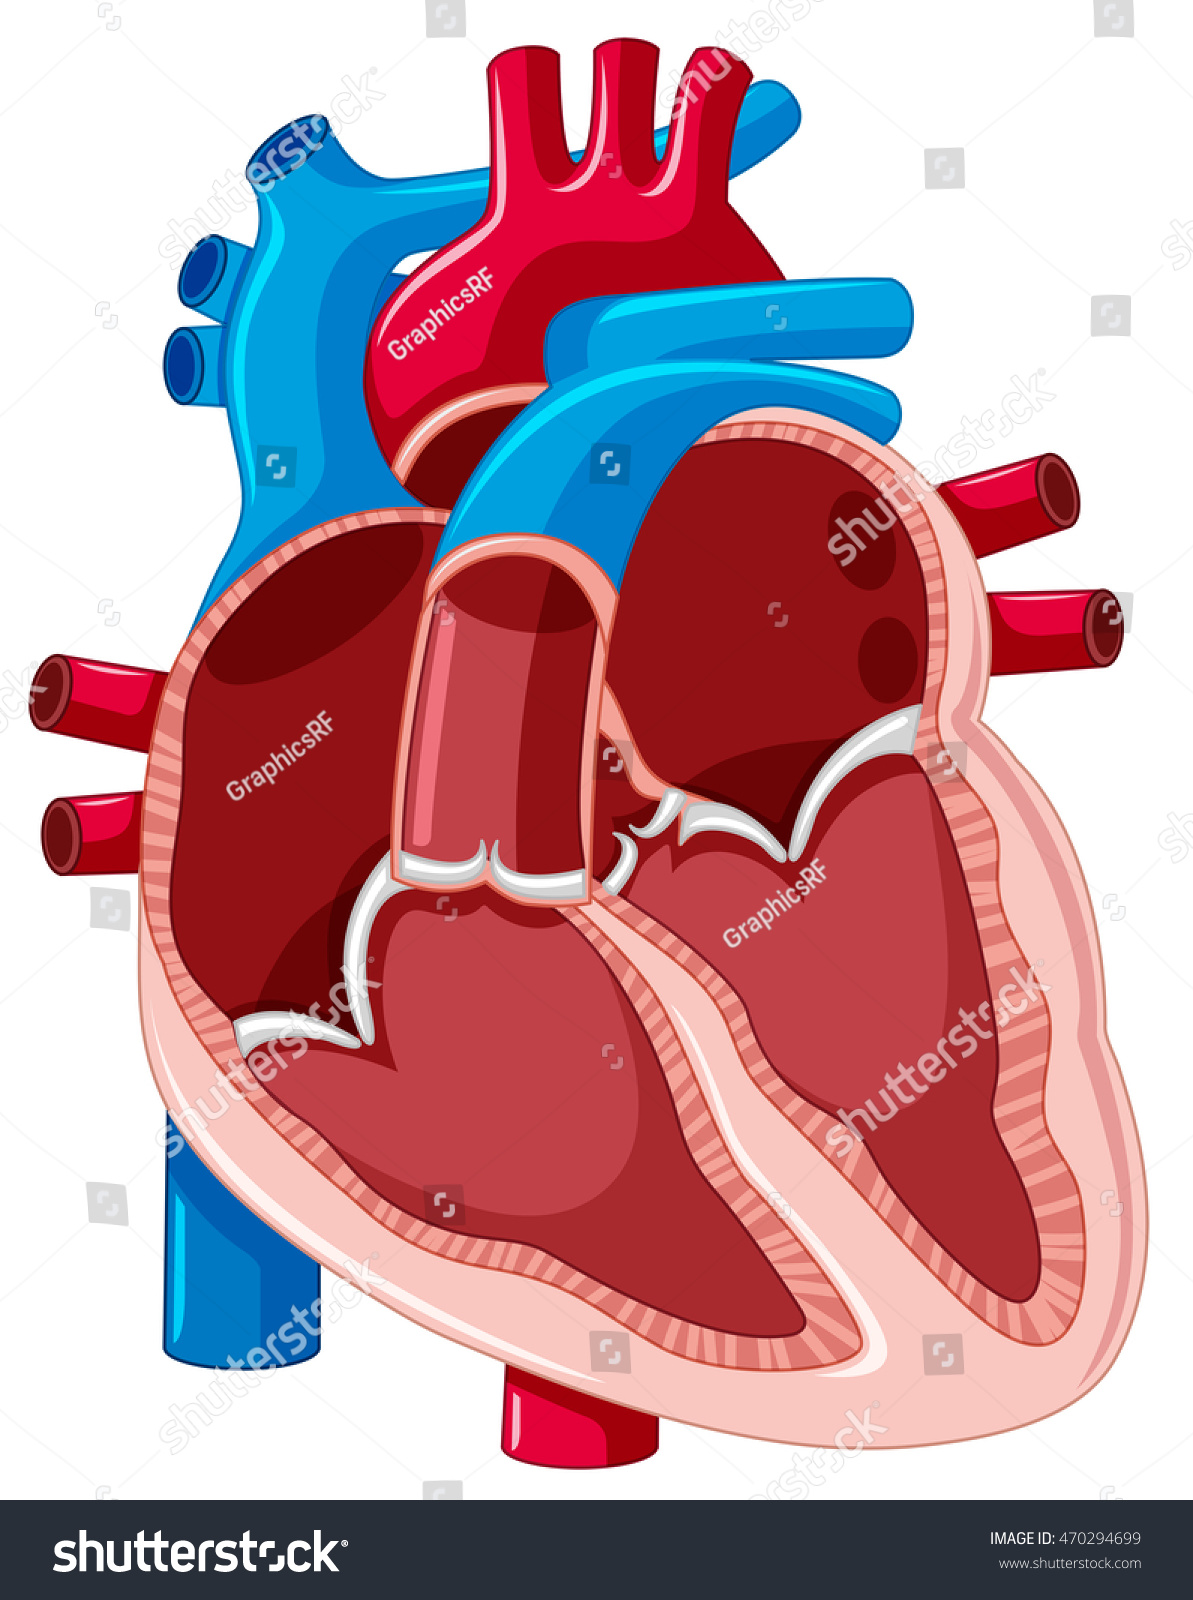 Diagram Showing Inside Human Heart Illustration Stock Vector